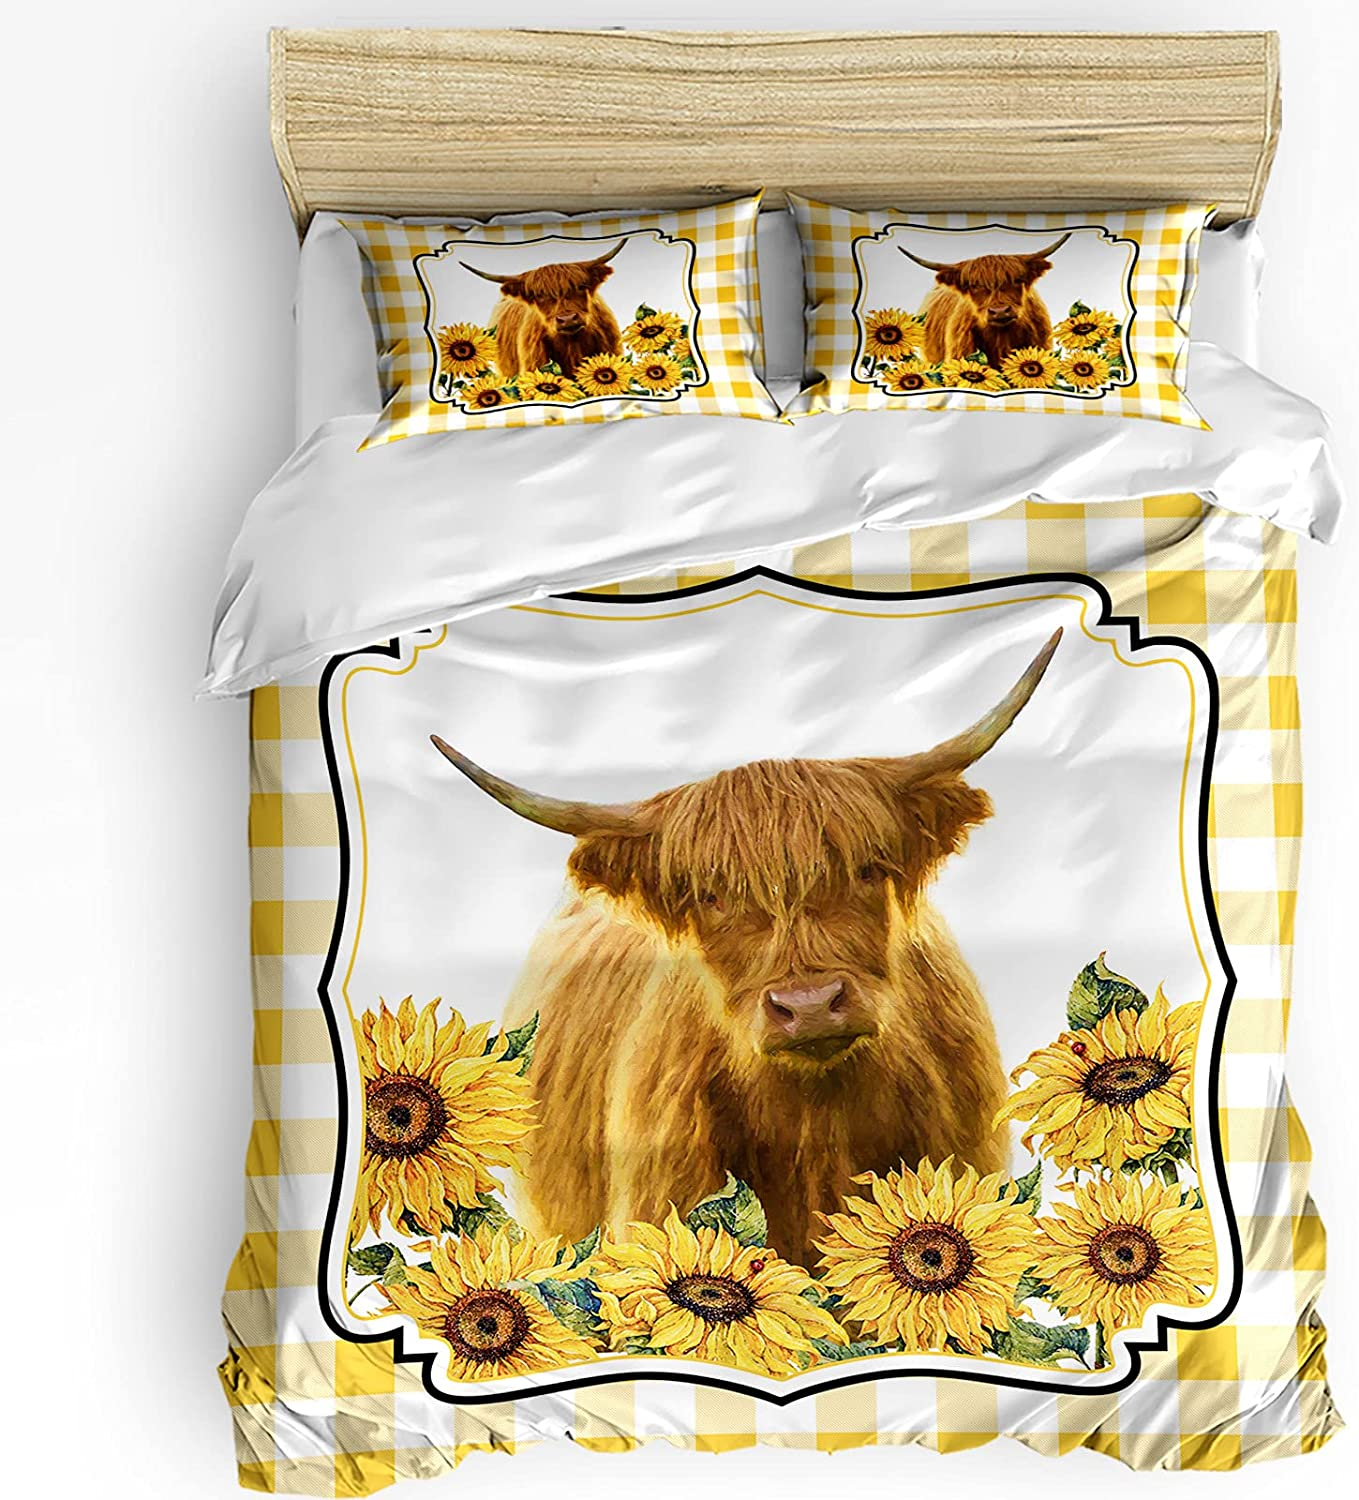 Duvet Cover Set Arlington Mall Breathable Comforter Closure Zipper Be super welcome with A